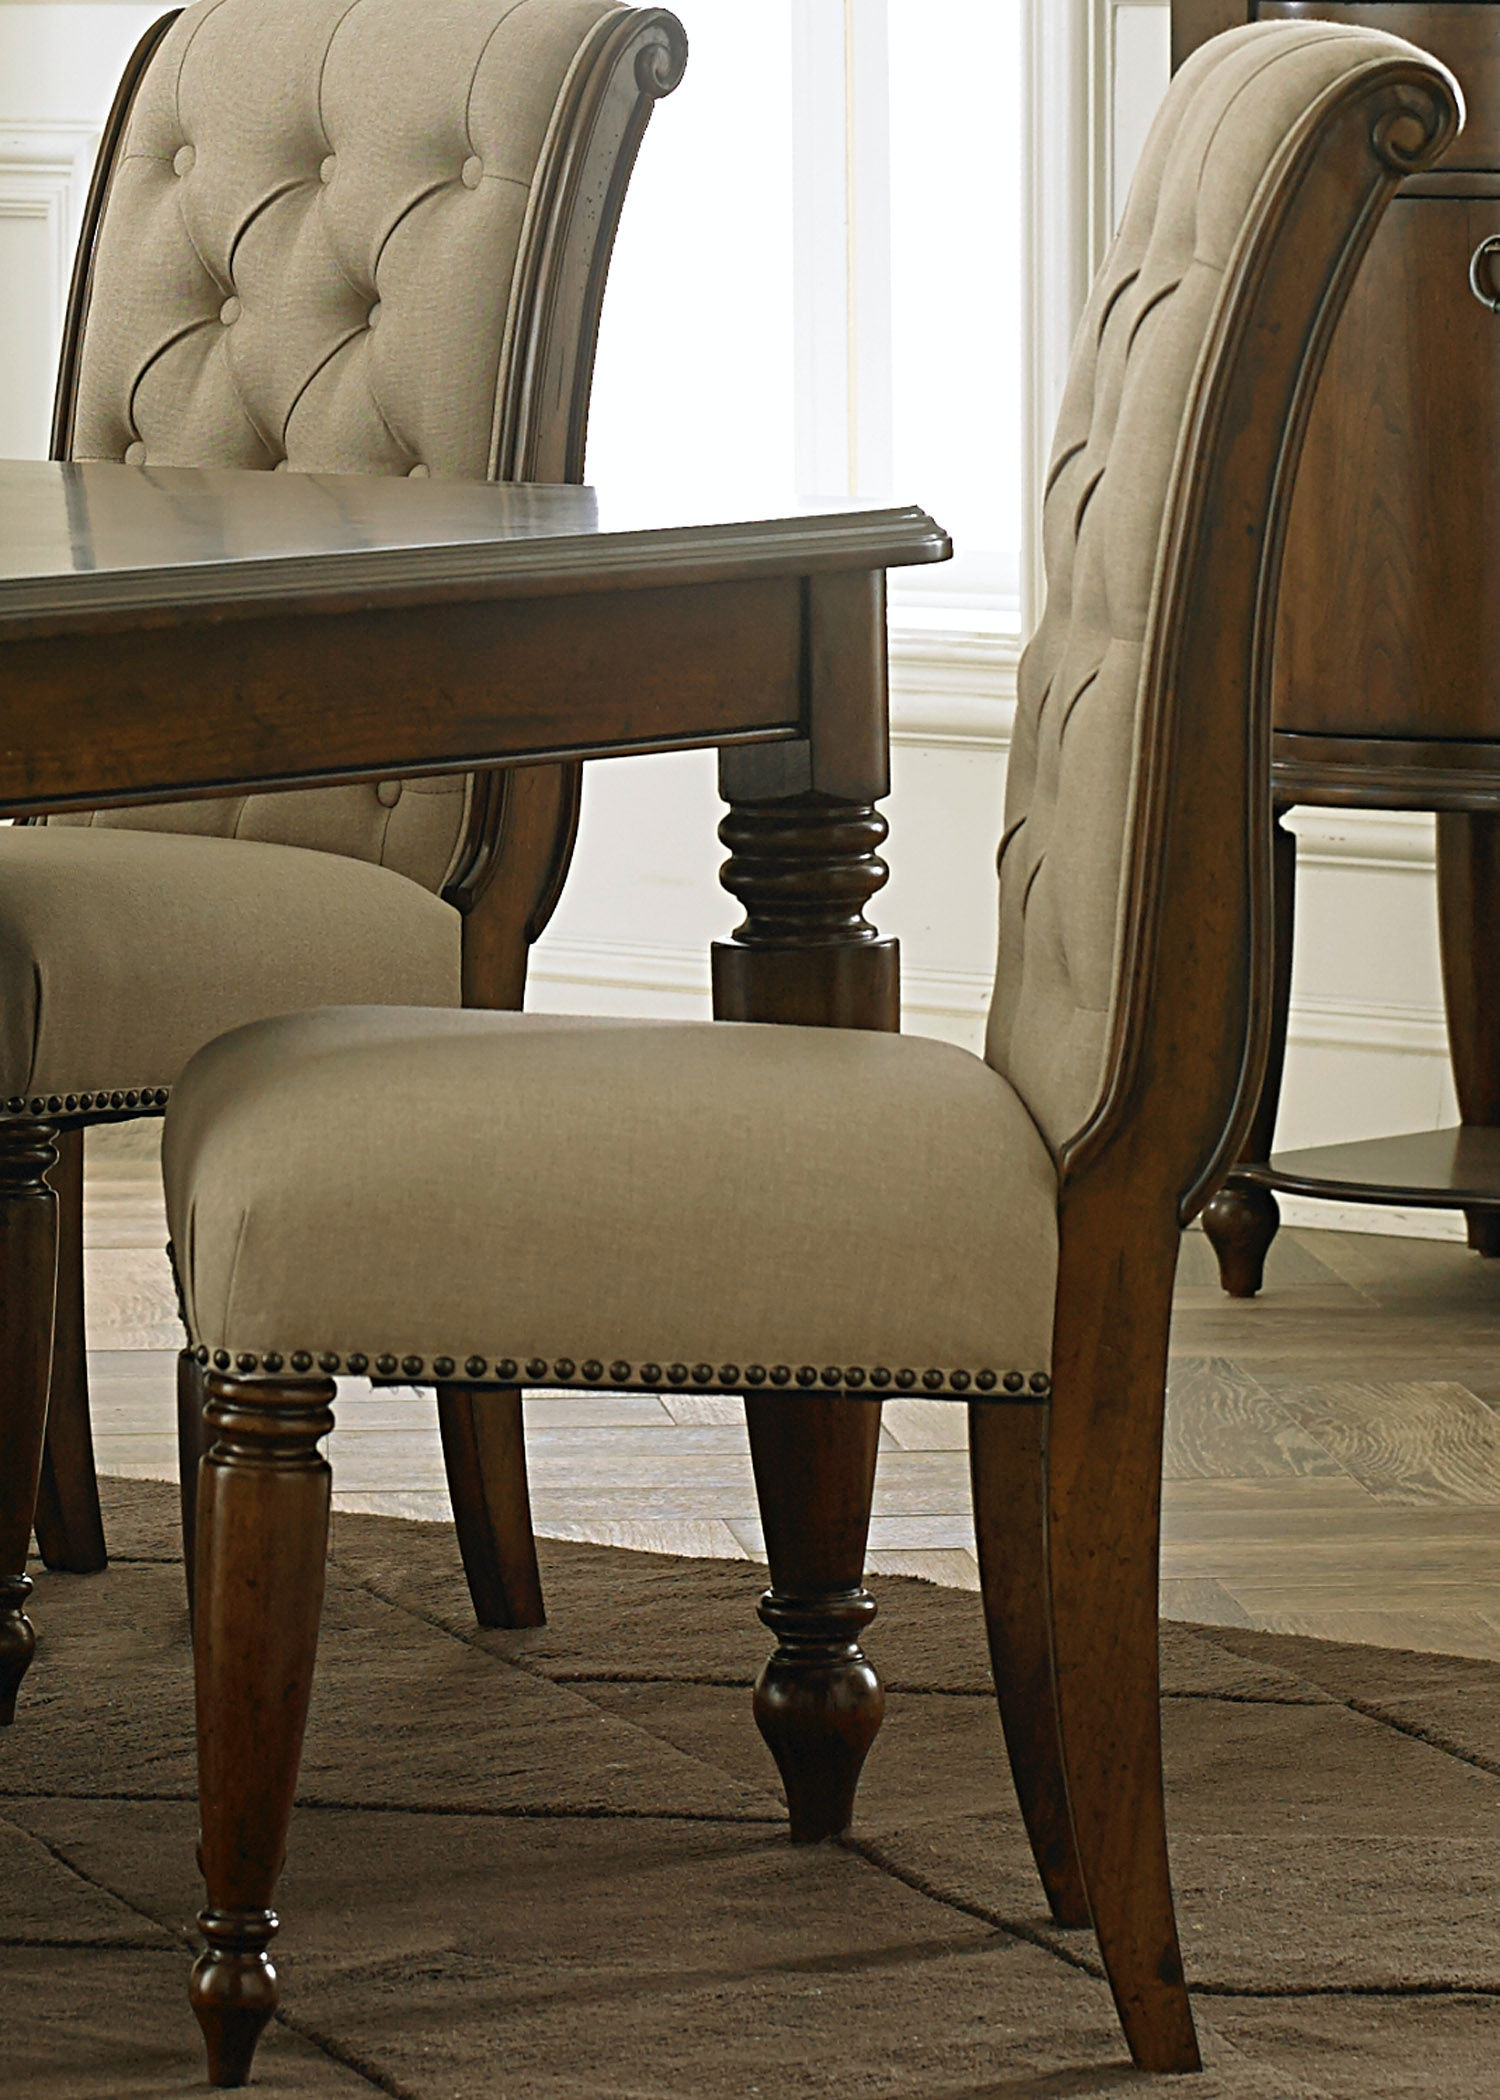 Liberty Furniture Dining Room Uph Side Chair (RTA) 545 C6501S   Turner  Furniture Company   Avon Park And Sebring, FL